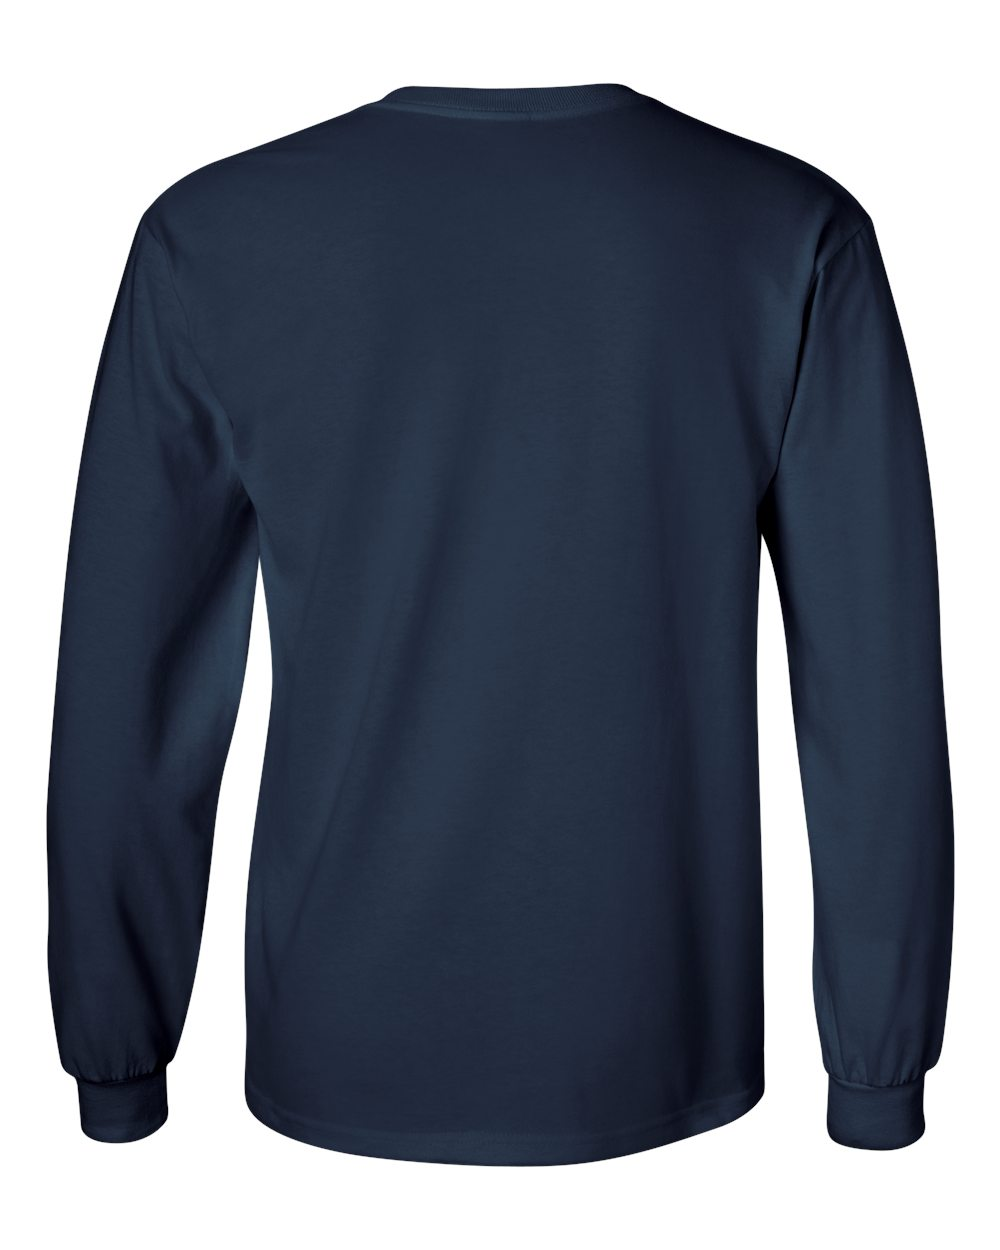 Gildan-Men-039-s-Ultra-Cotton-6-oz-Long-Sleeve-T-Shirt-G240-S-5XL thumbnail 68